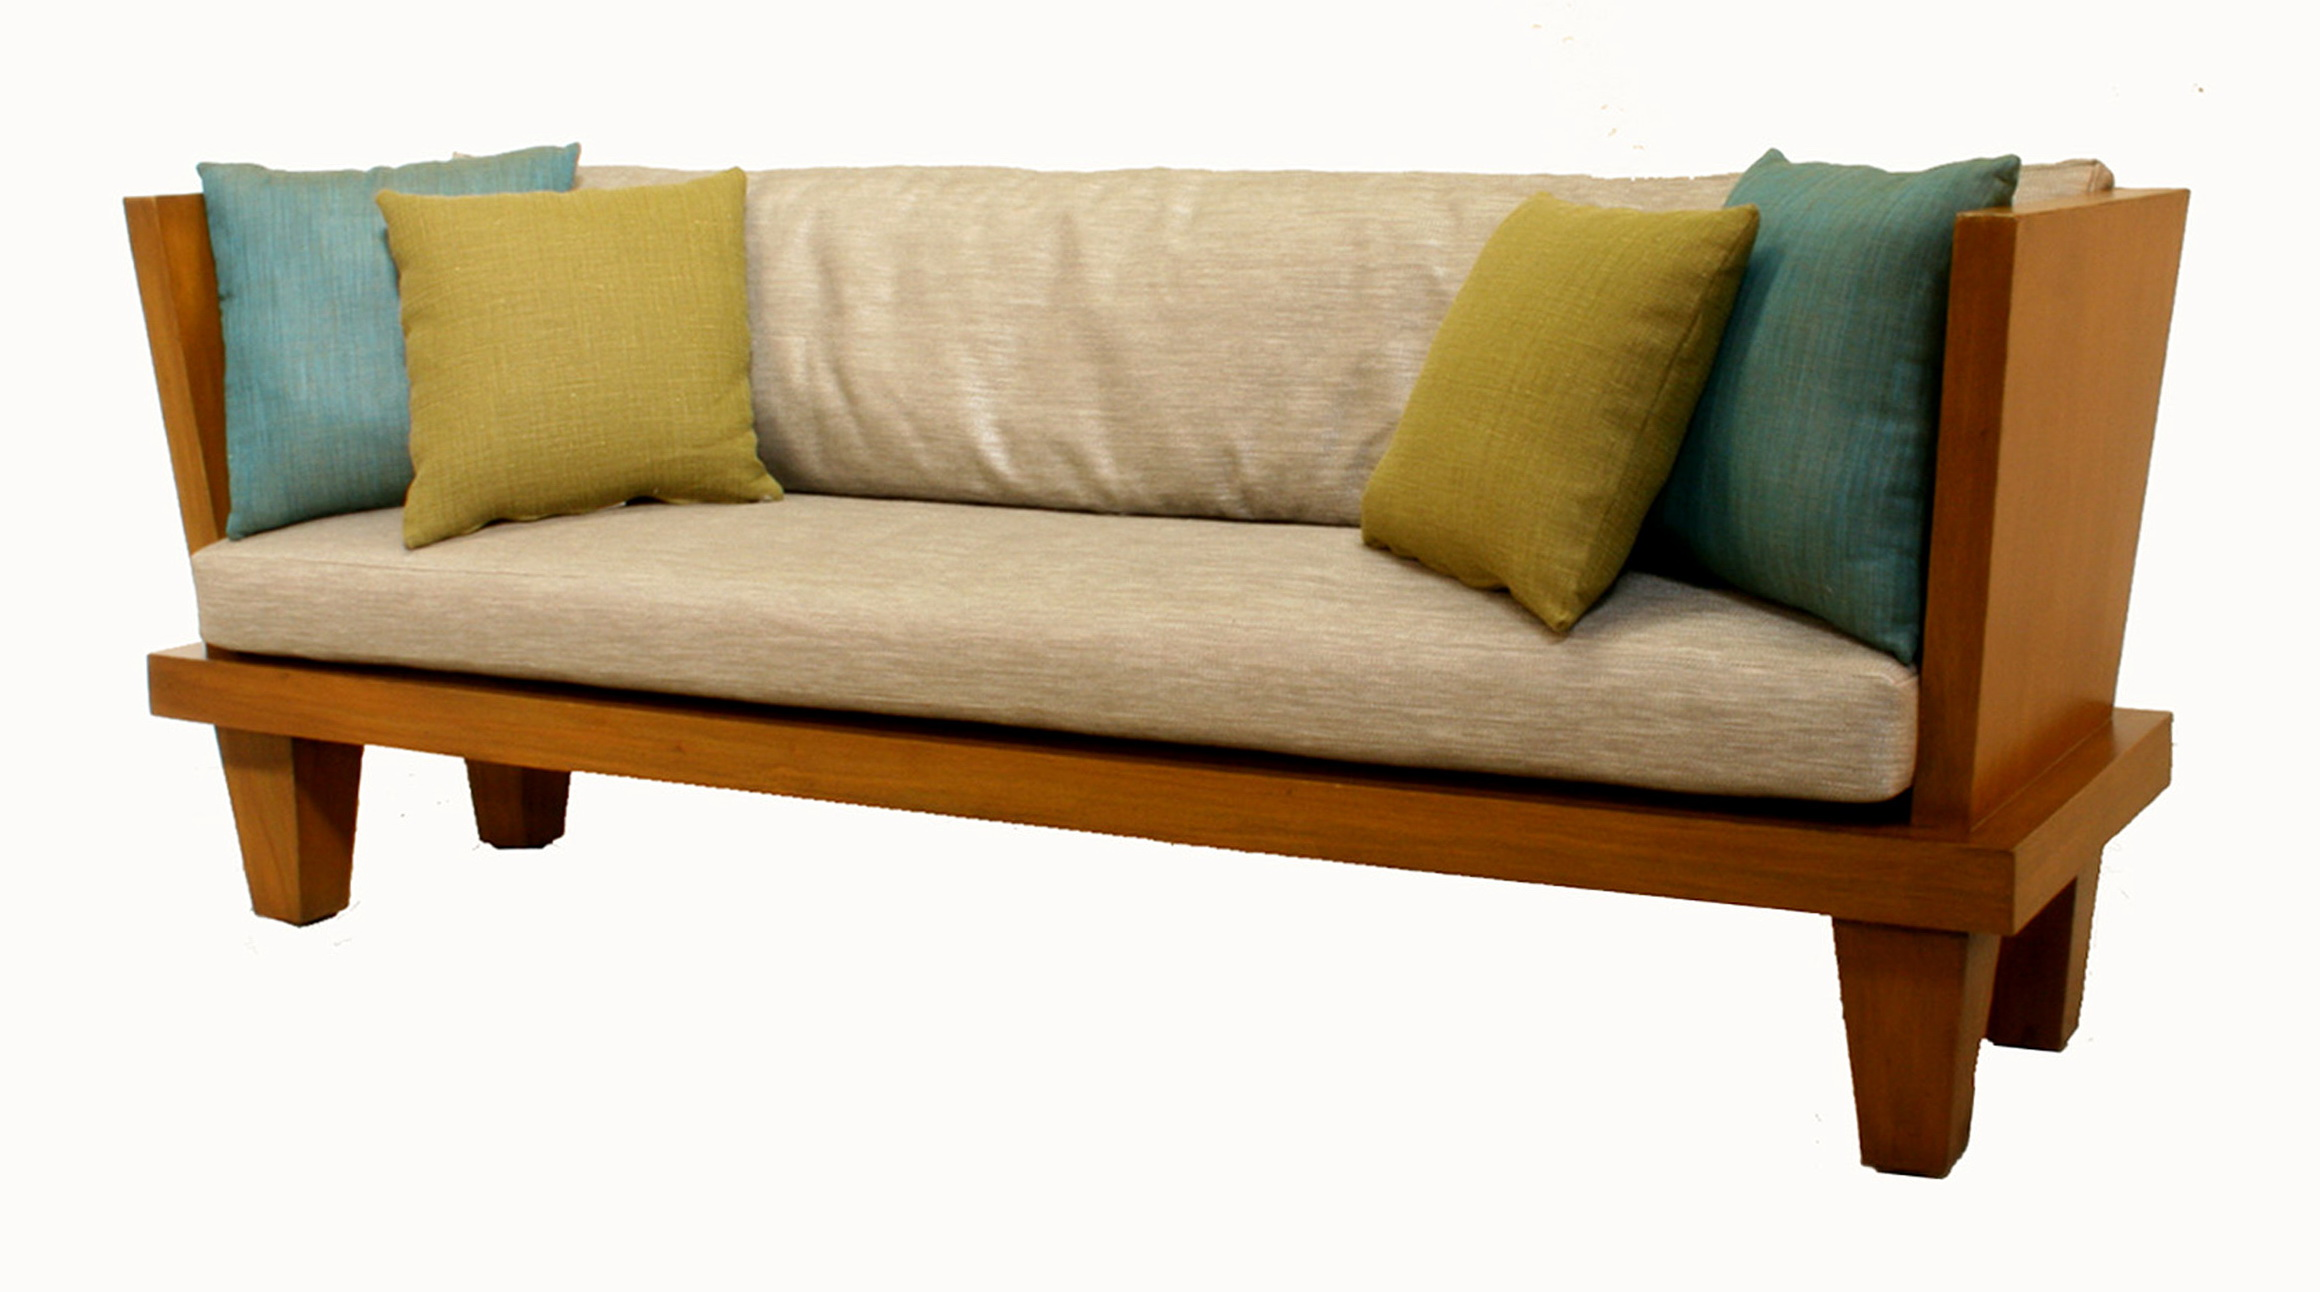 Indoor Bench Cushion 40 X 16 Home Design Ideas